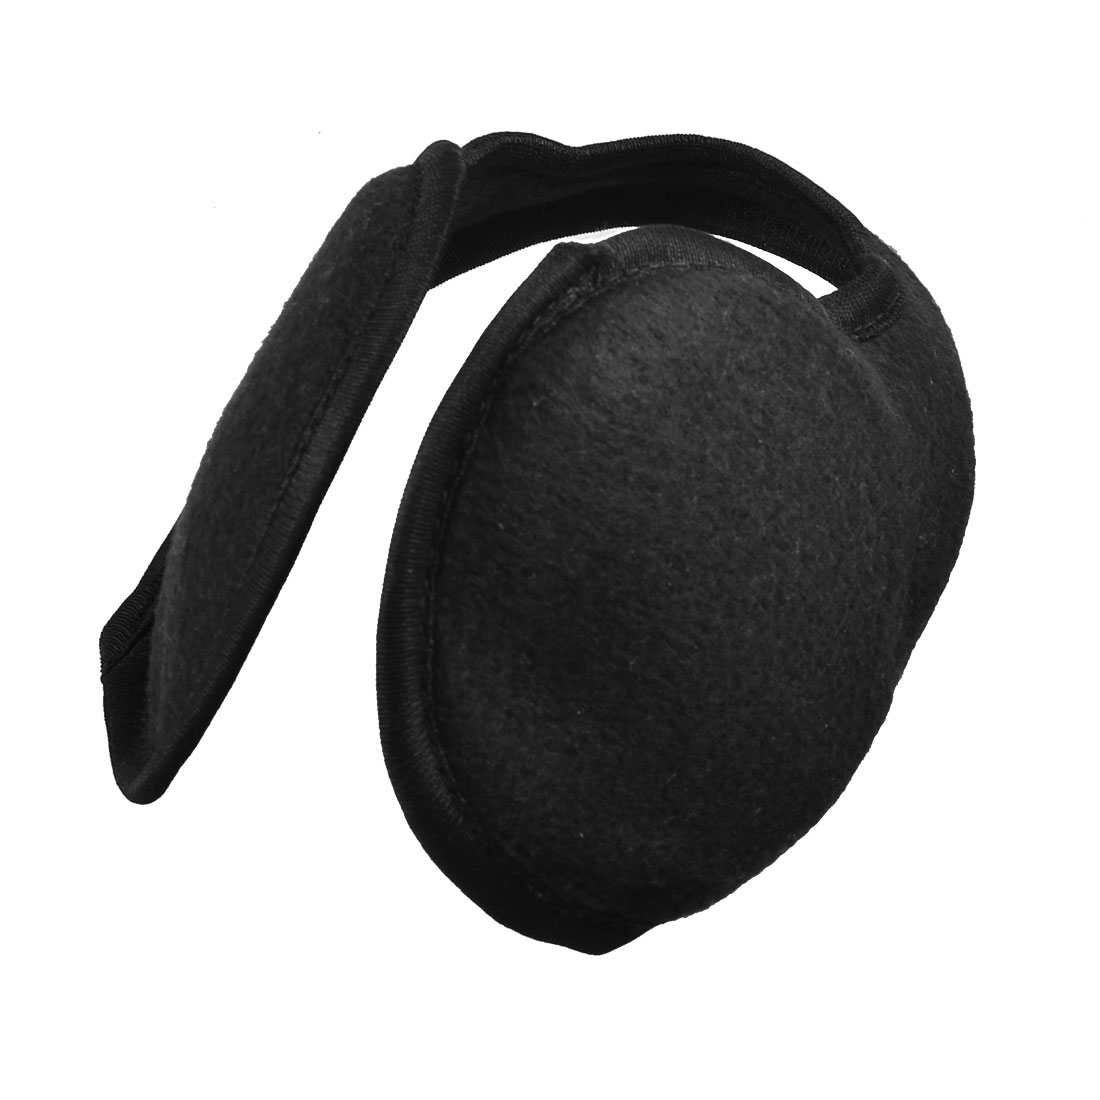 Metal Frame Black Fleece Ear Warmers Back Wear Earmuffs for Men Women